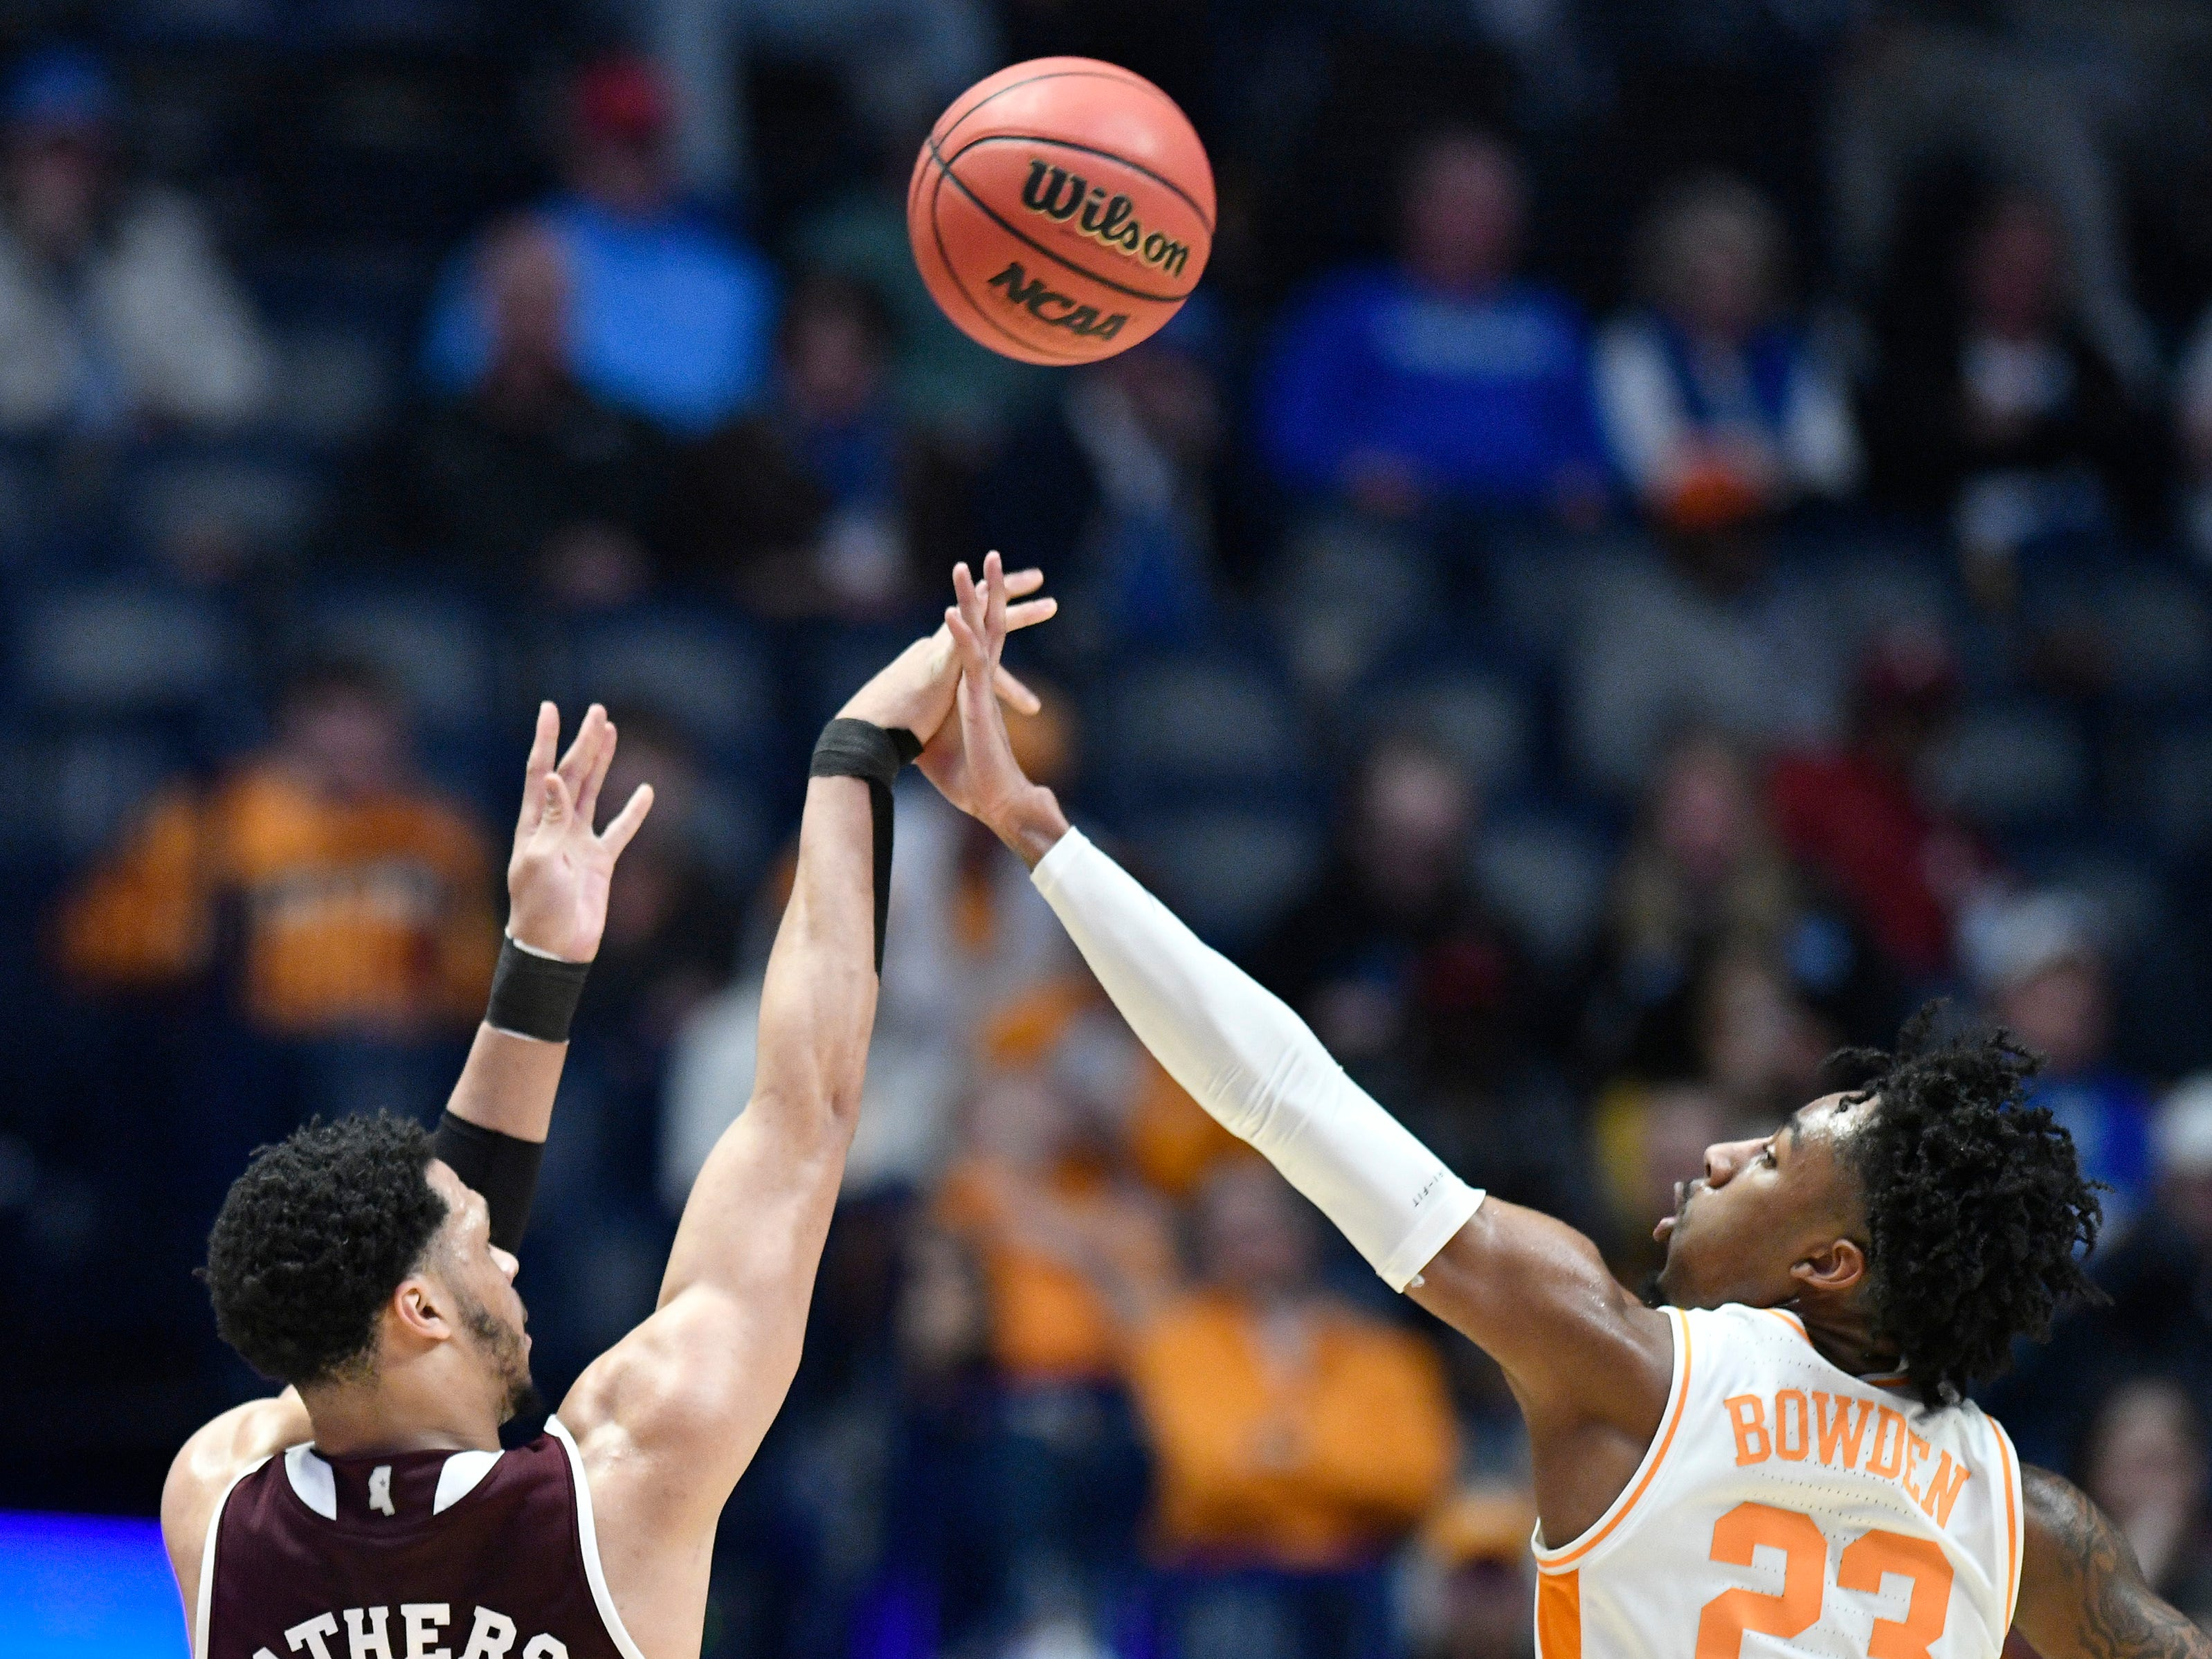 Mississippi State guard Quinndary Weatherspoon (11) shoots while defended by Tennessee guard Jordan Bowden (23) during the first half of the SEC Men's Basketball Tournament game at Bridgestone Arena in Nashville, Tenn., Friday, March 15, 2019.